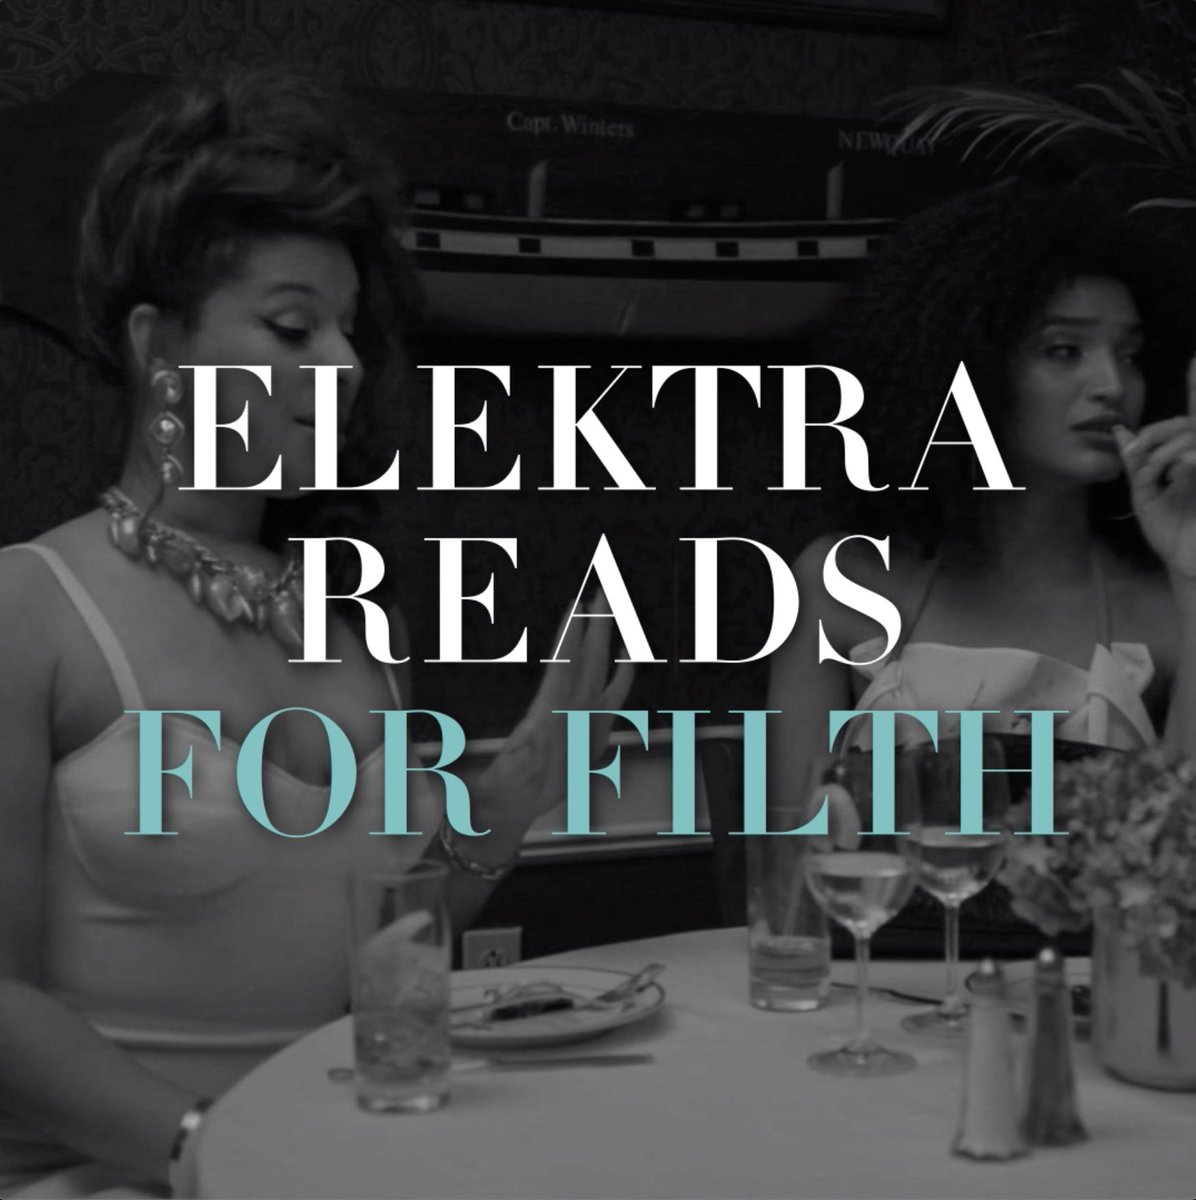 Reading is Filthamental. #PoseFX